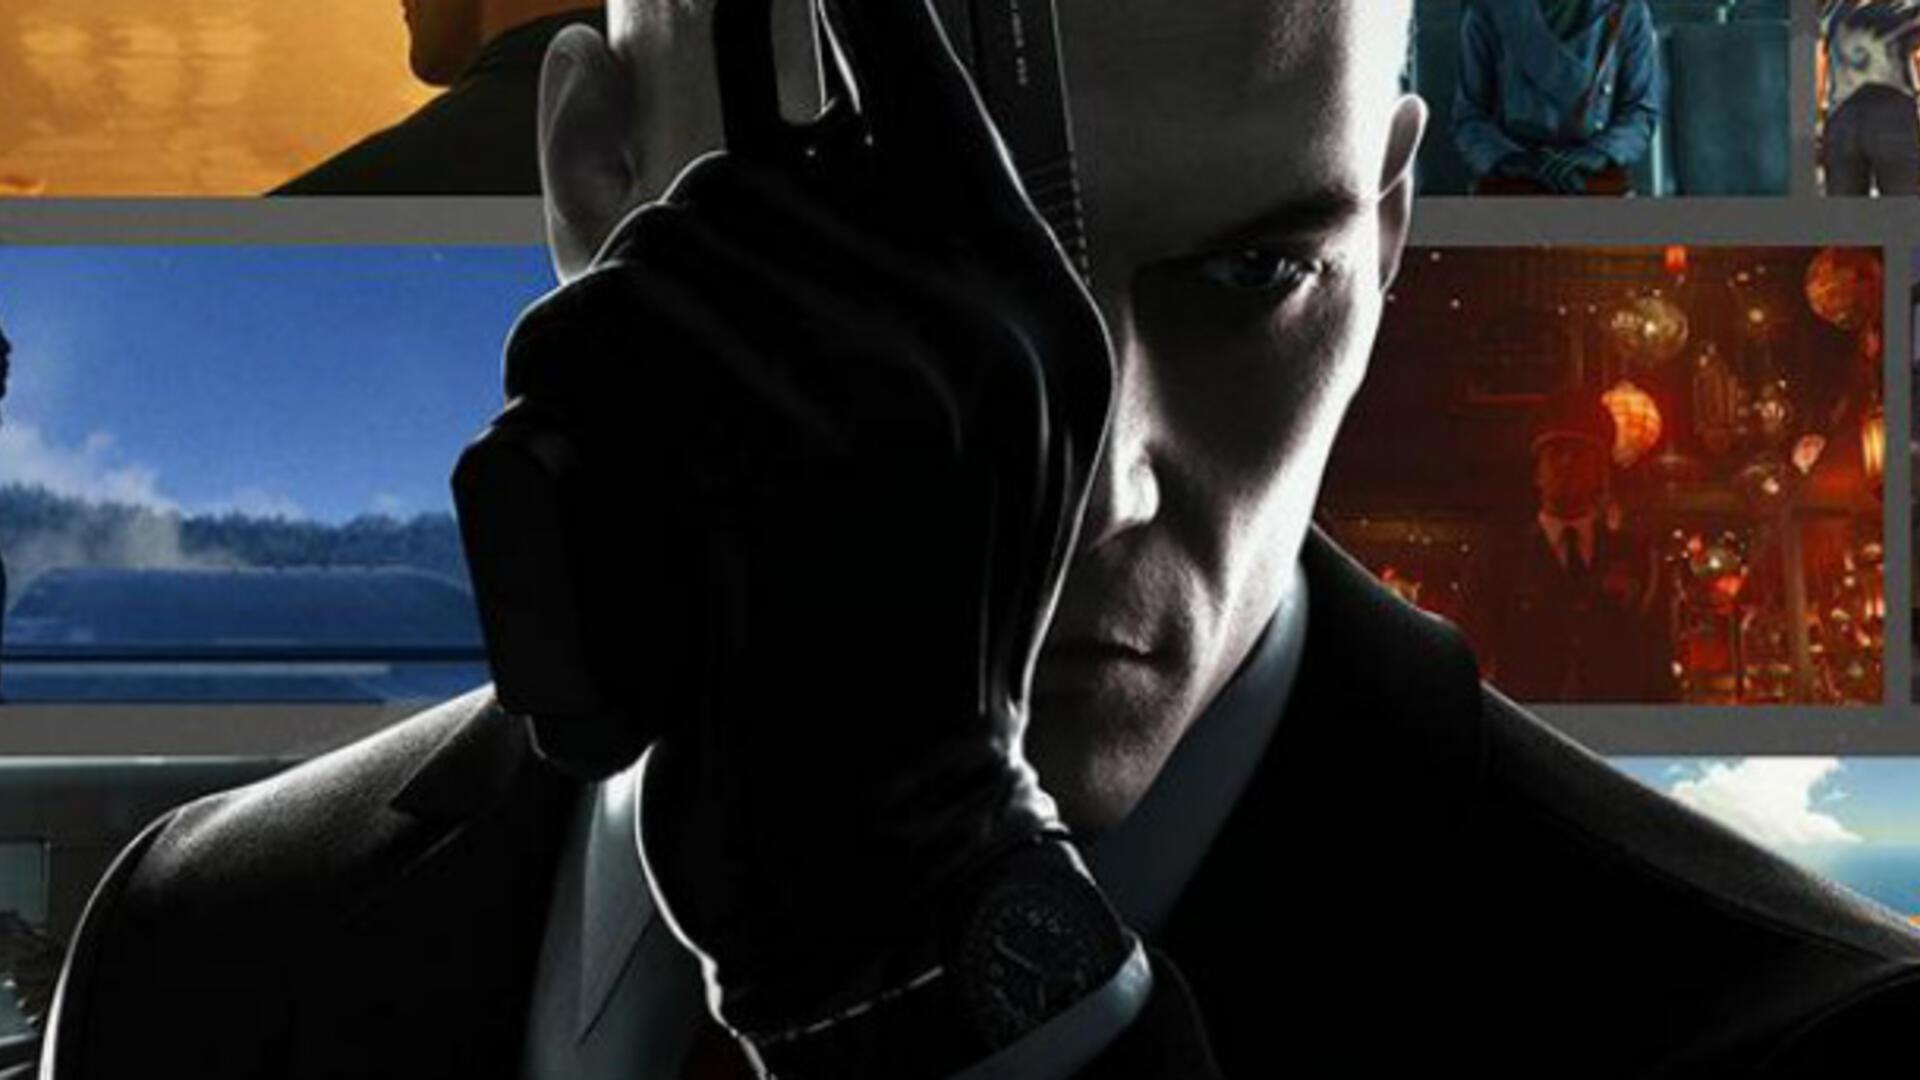 Now Is the Time to Play Hitman, as IO Offers Tutorial Mission for Free